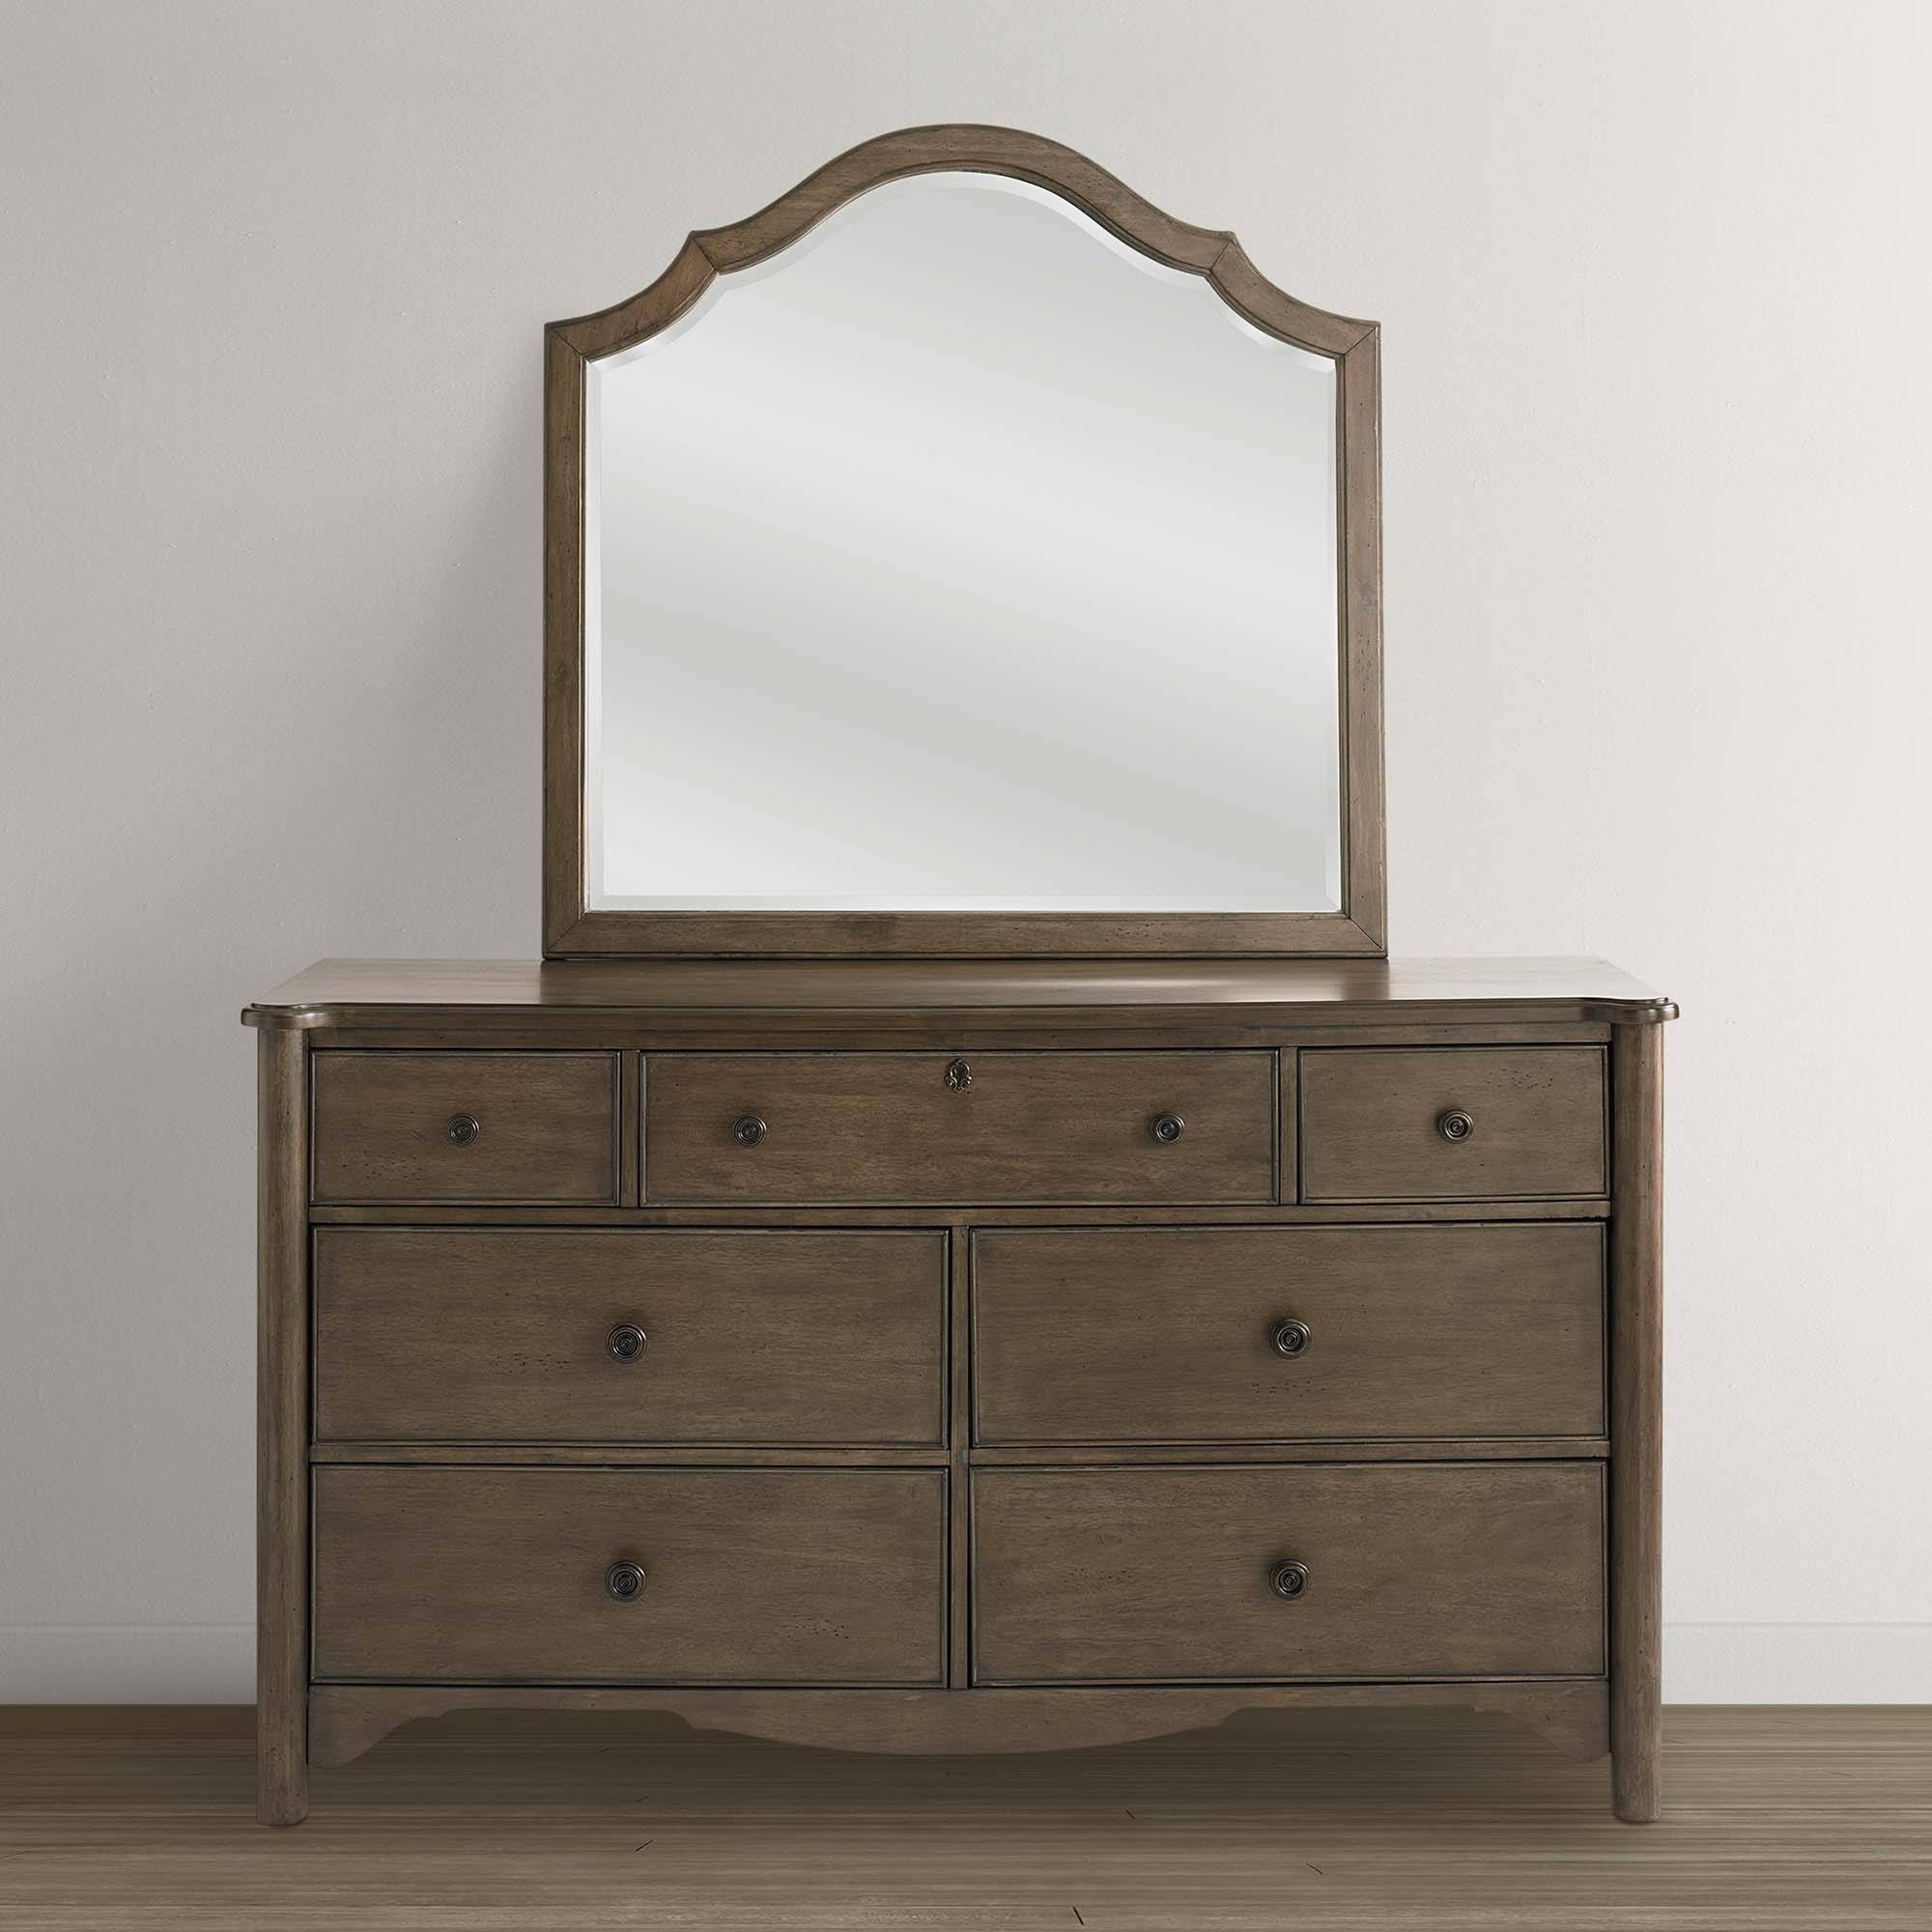 Mirrors | Decorative Mirrors intended for Ornamental Mirrors (Image 16 of 25)